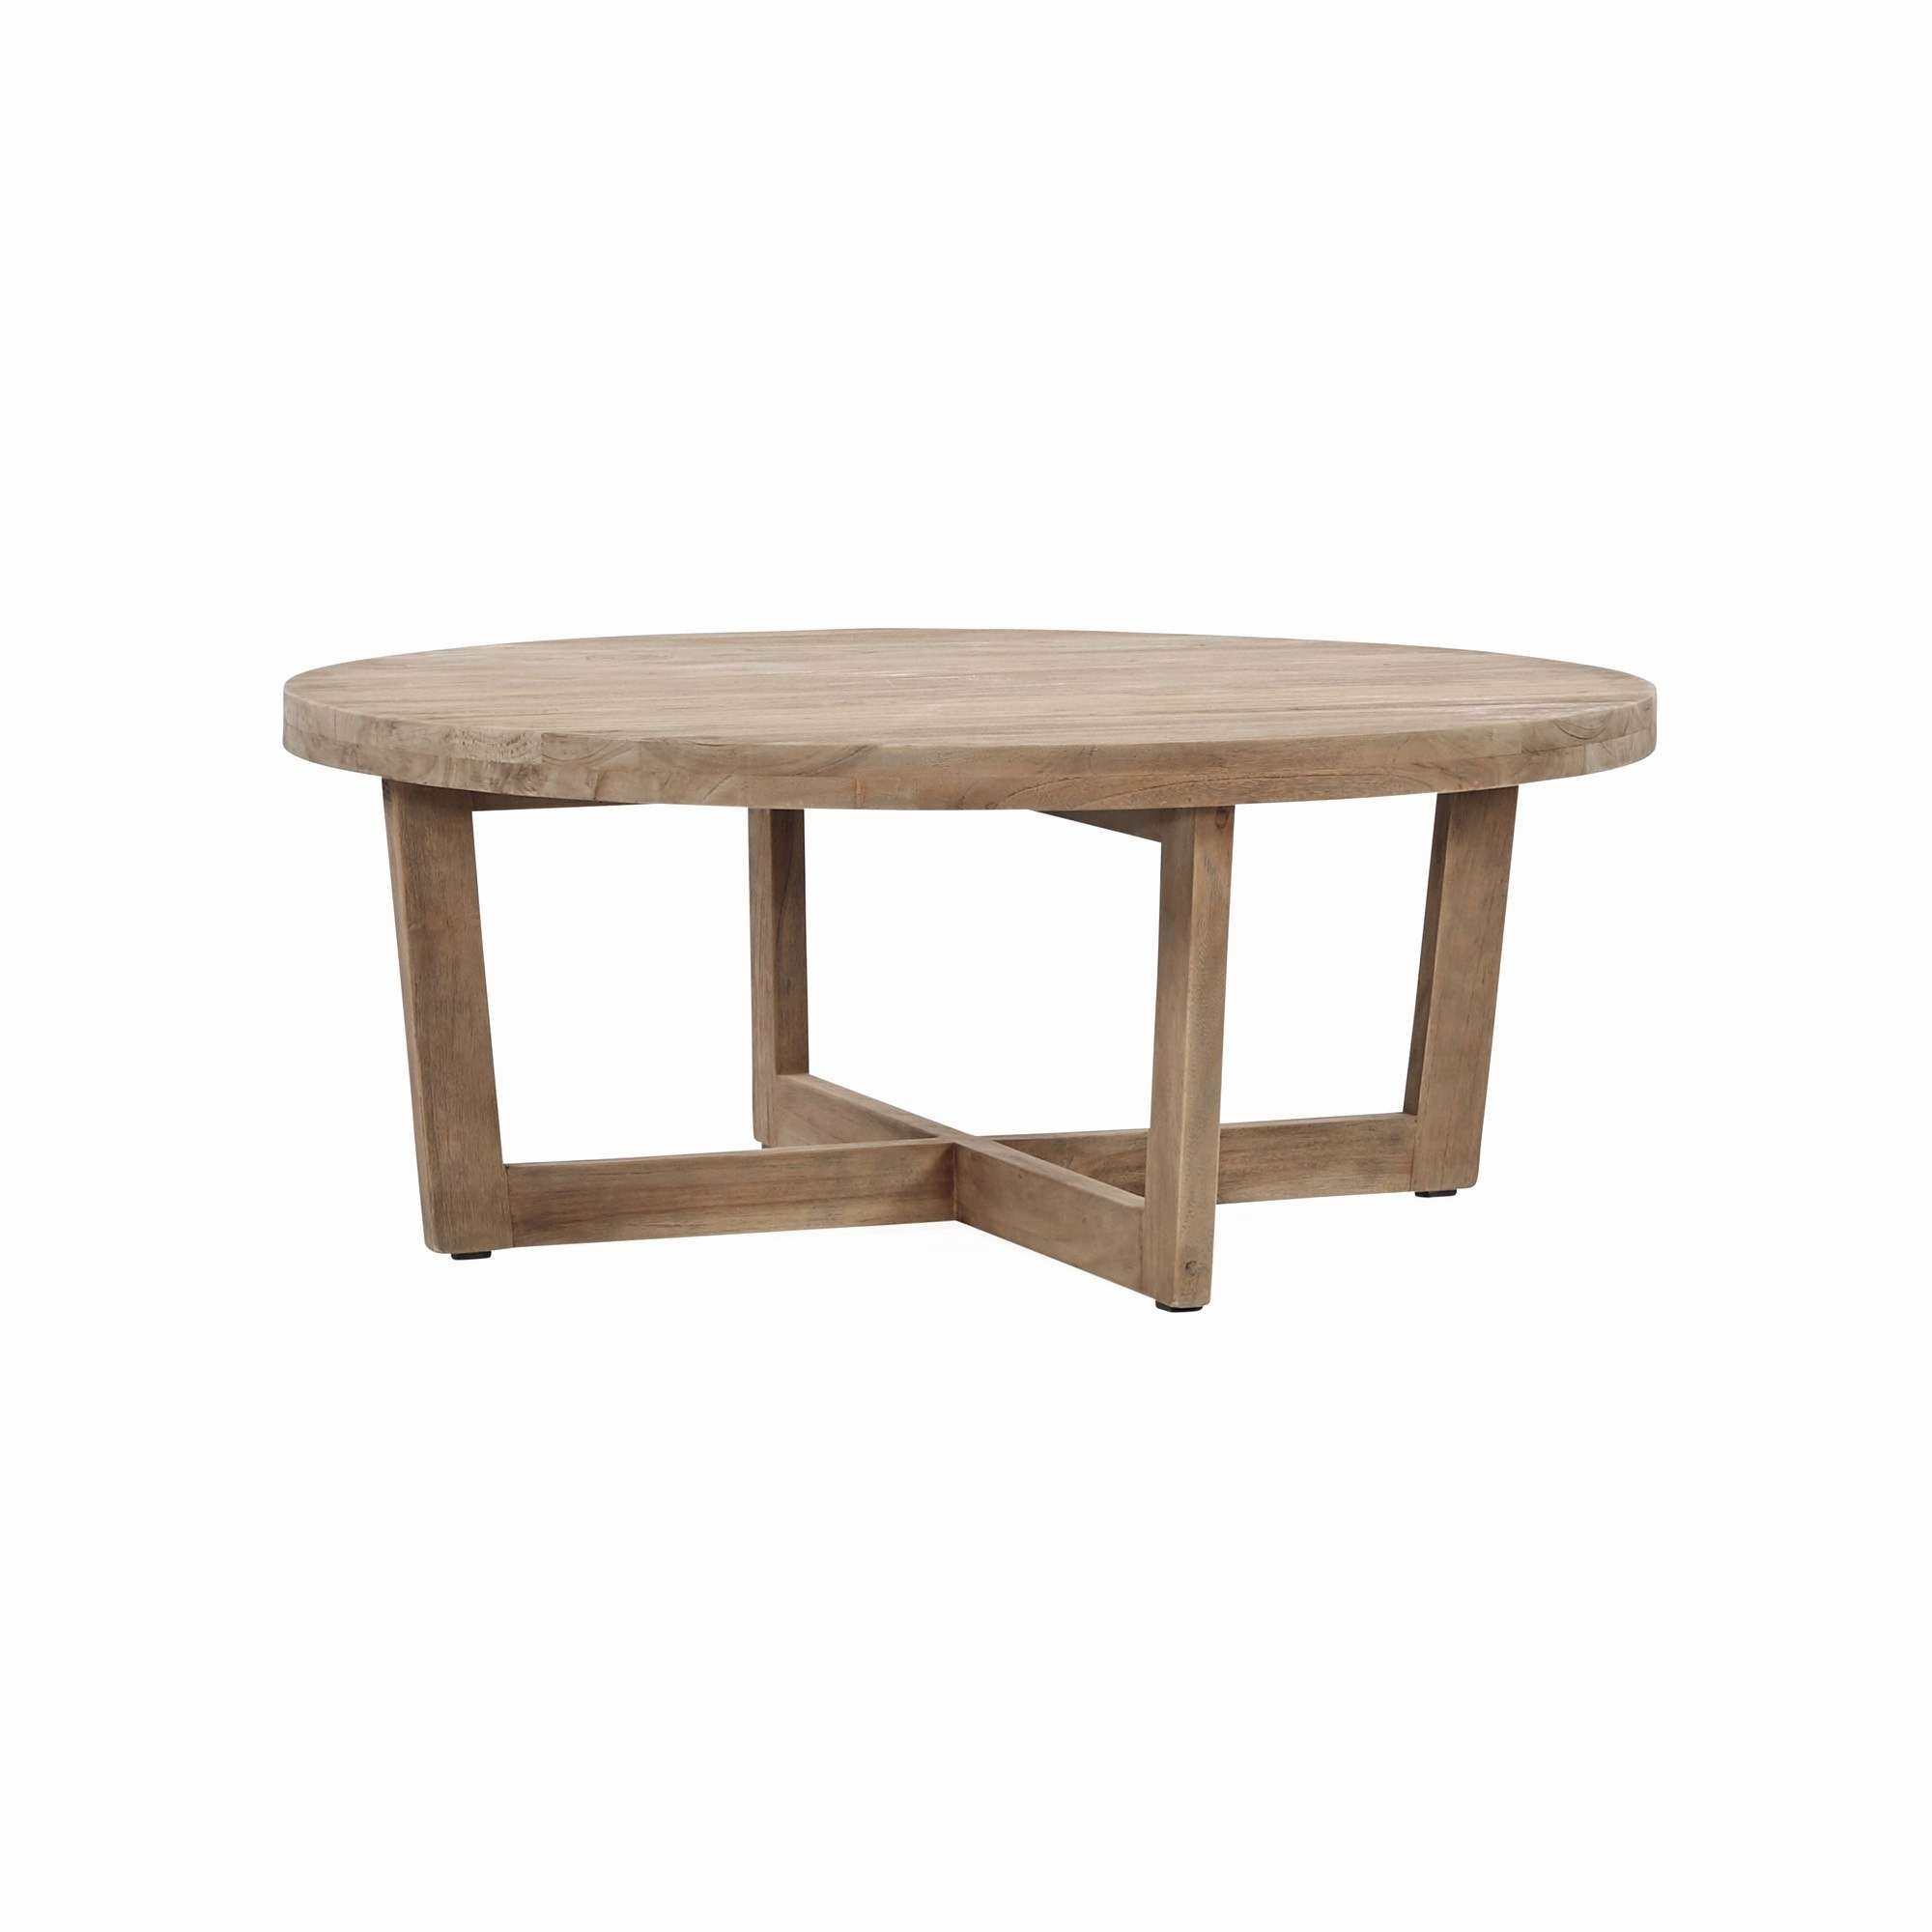 Small Space Lift Top Coffee Table Rushing To Purchase A Coffee